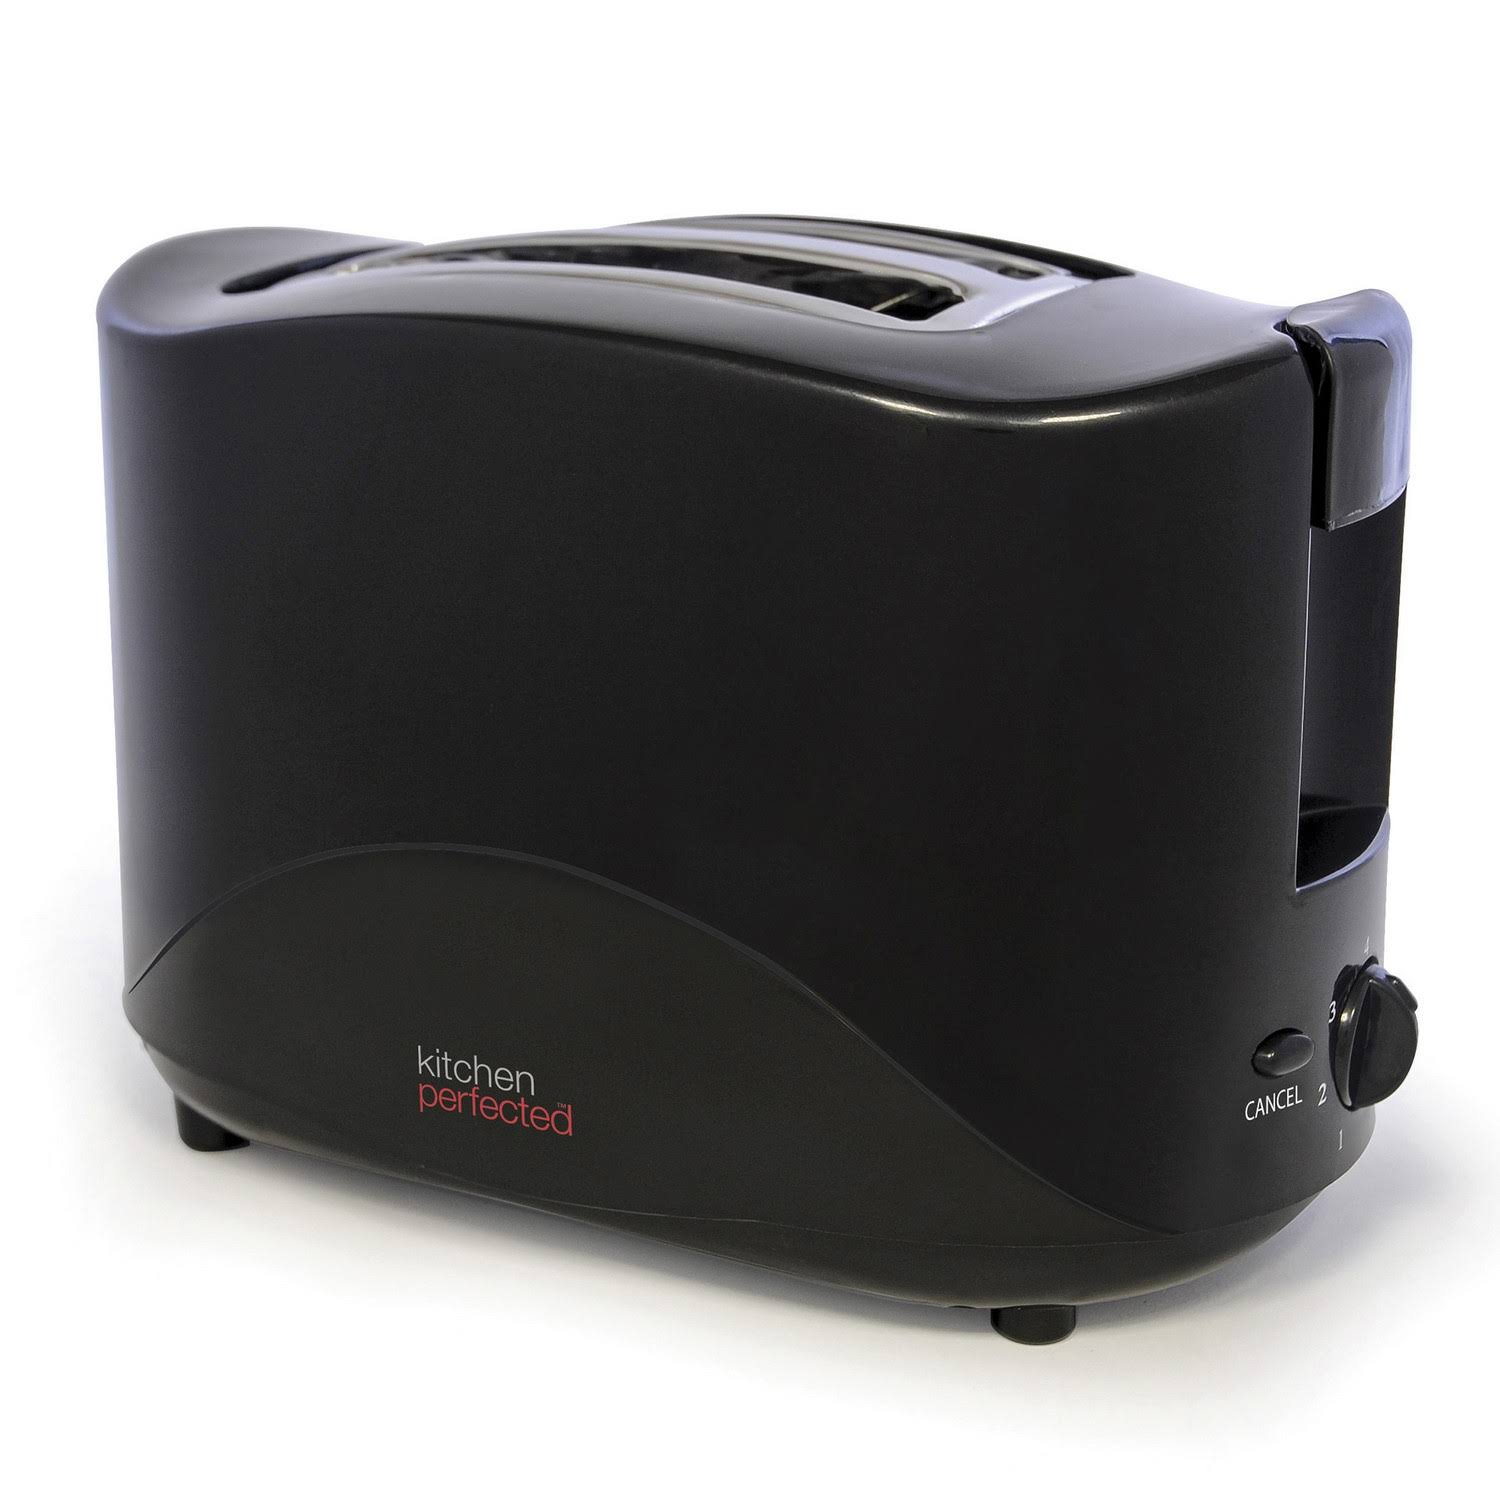 Lloytron Kitchen Perfected 2 Slice Toaster - Black, 750w